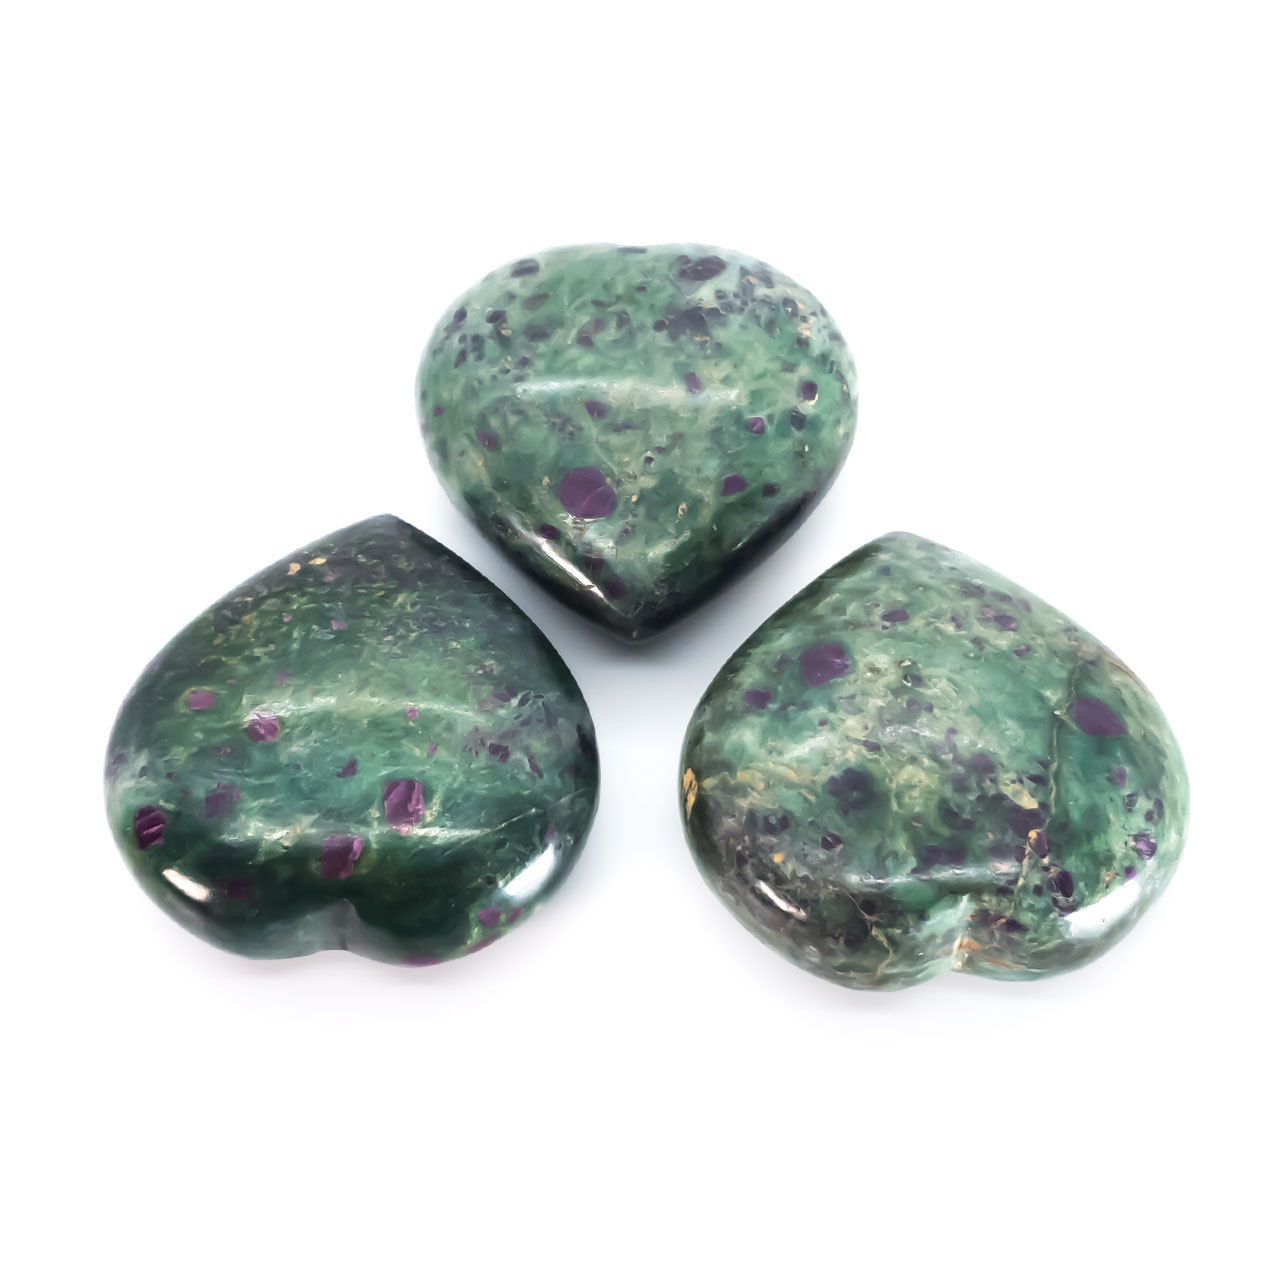 Primary image for Ruby Fuchsite Puff Hearts - 2 to 2.5 Inches Aprox.